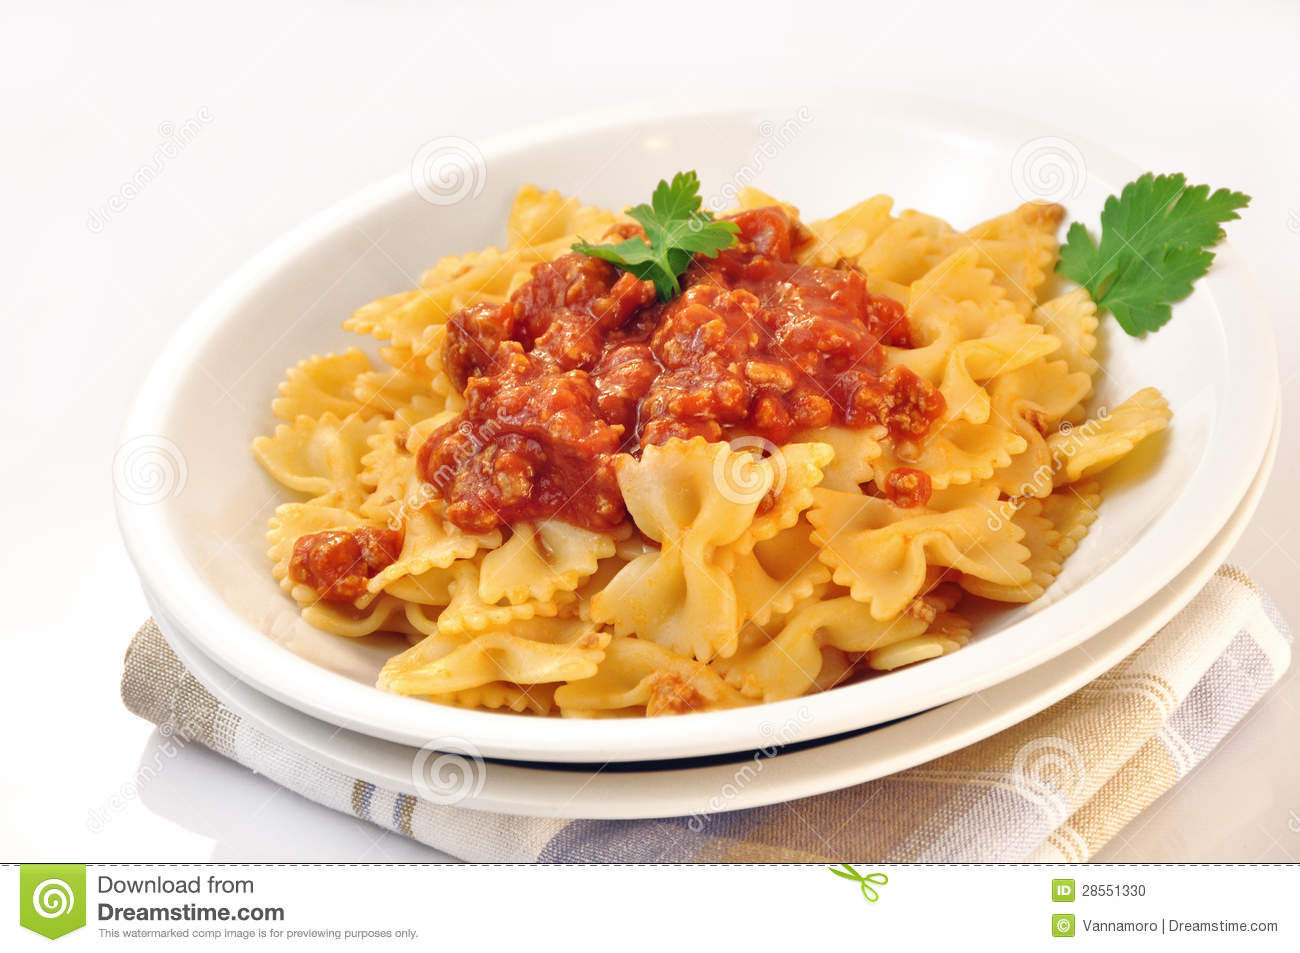 how to cook pasta sauce with meat